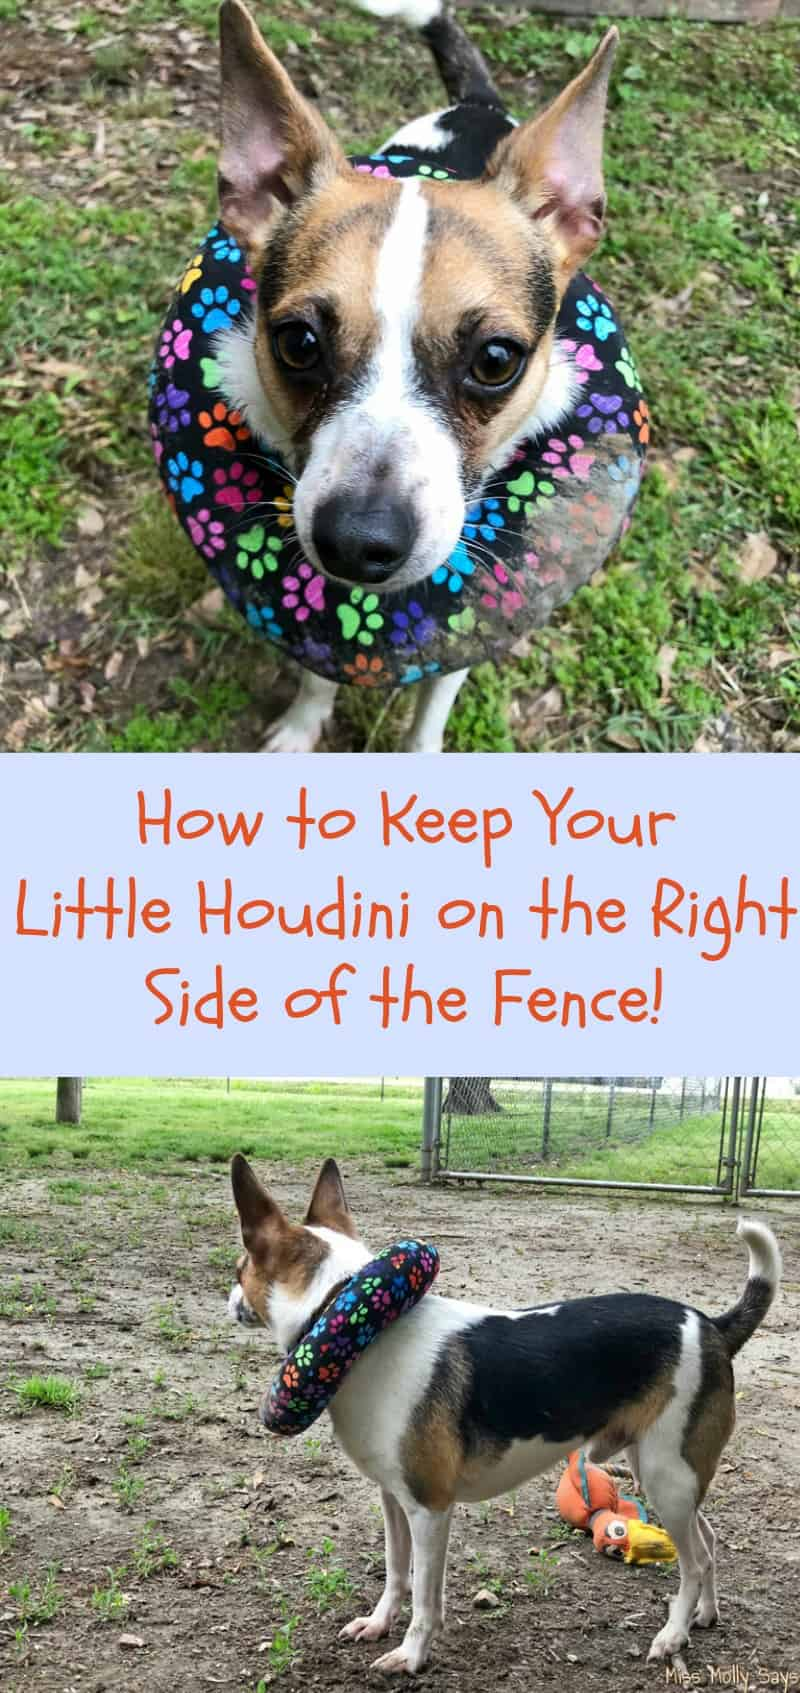 How to Keep Your Little Houdini on the Right Side of the Fence